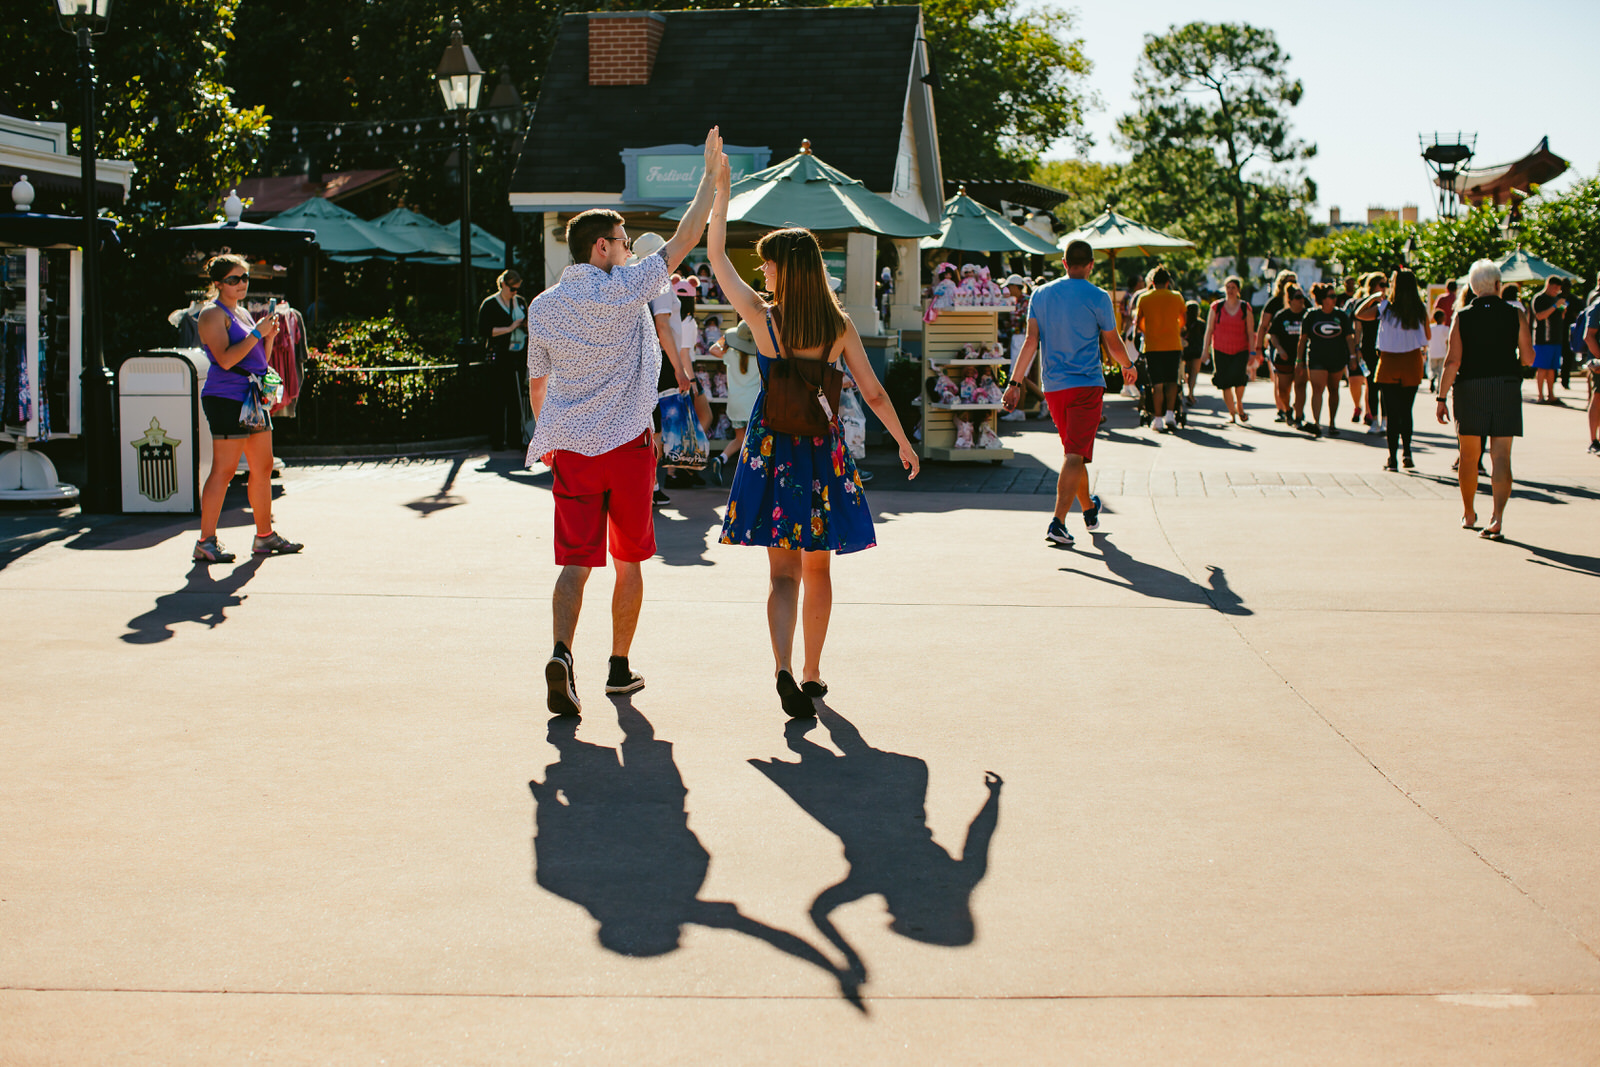 epcot-engagement-fun-tiny-house-photo-dancing-tiny-house-photo-disney.jpg